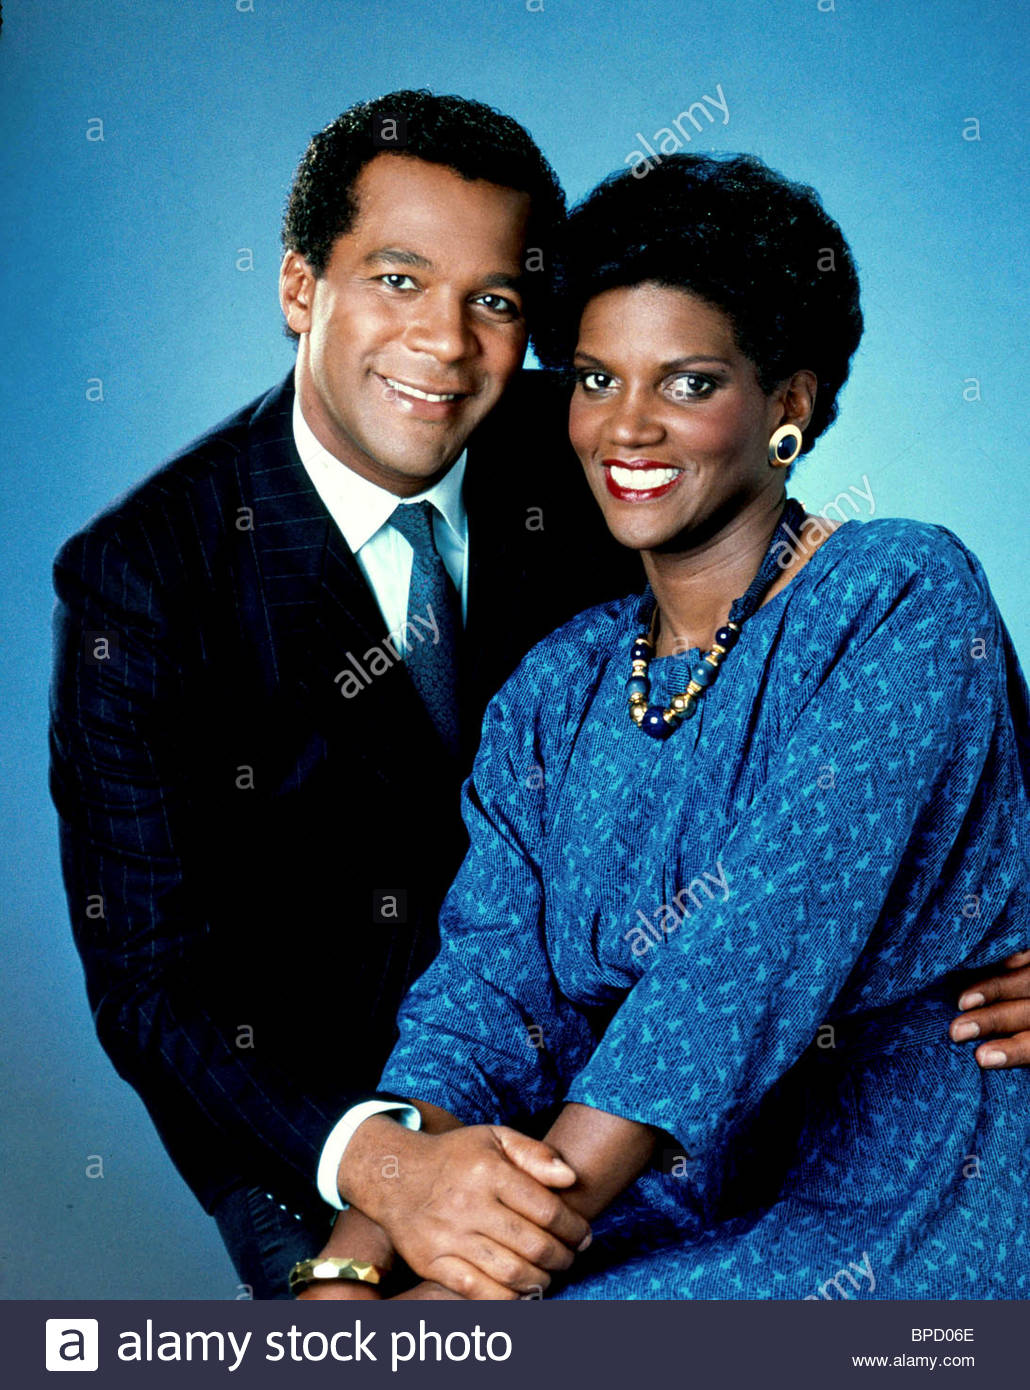 clifton davis songsclifton davis age, clifton davis wife, clifton davis actor, clifton davis ministries, clifton davis aladdin, clifton davis imdb, clifton davis tv shows, clifton davis mma, clifton davis movies, clifton davis songs, clifton davis 2016, clifton davis shows, clifton davis 2017, clifton davis biography, clifton davis facebook, clifton davis on madam secretary, clifton davis memphis tn, clifton davis images, clifton davis songwriter, clifton davis deloitte